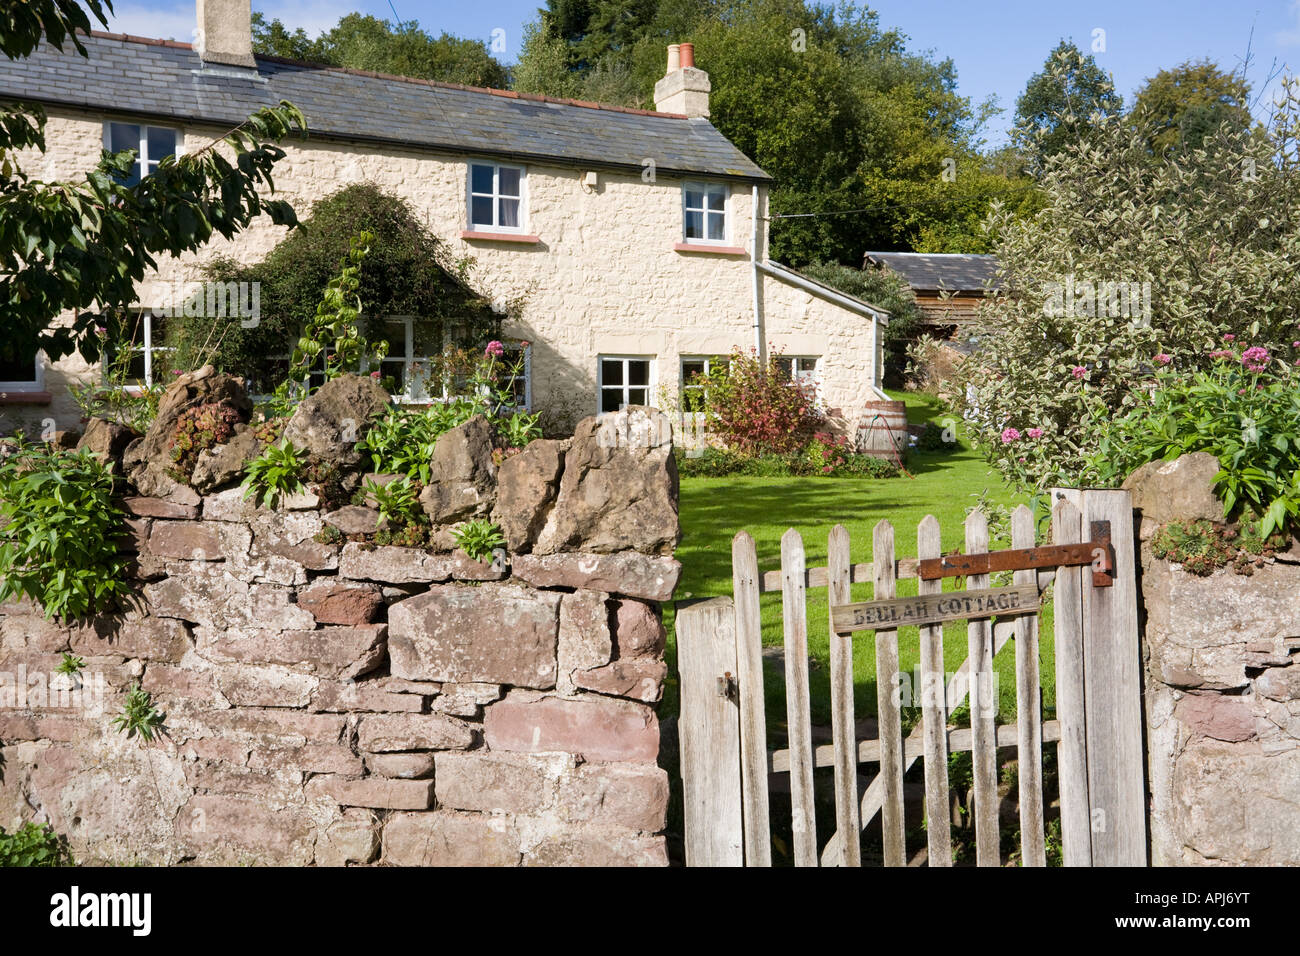 Beulah Cottage in the hamlet of Green Bottom in the Forest of Dean near Cinderford, Gloucestershire - Stock Image